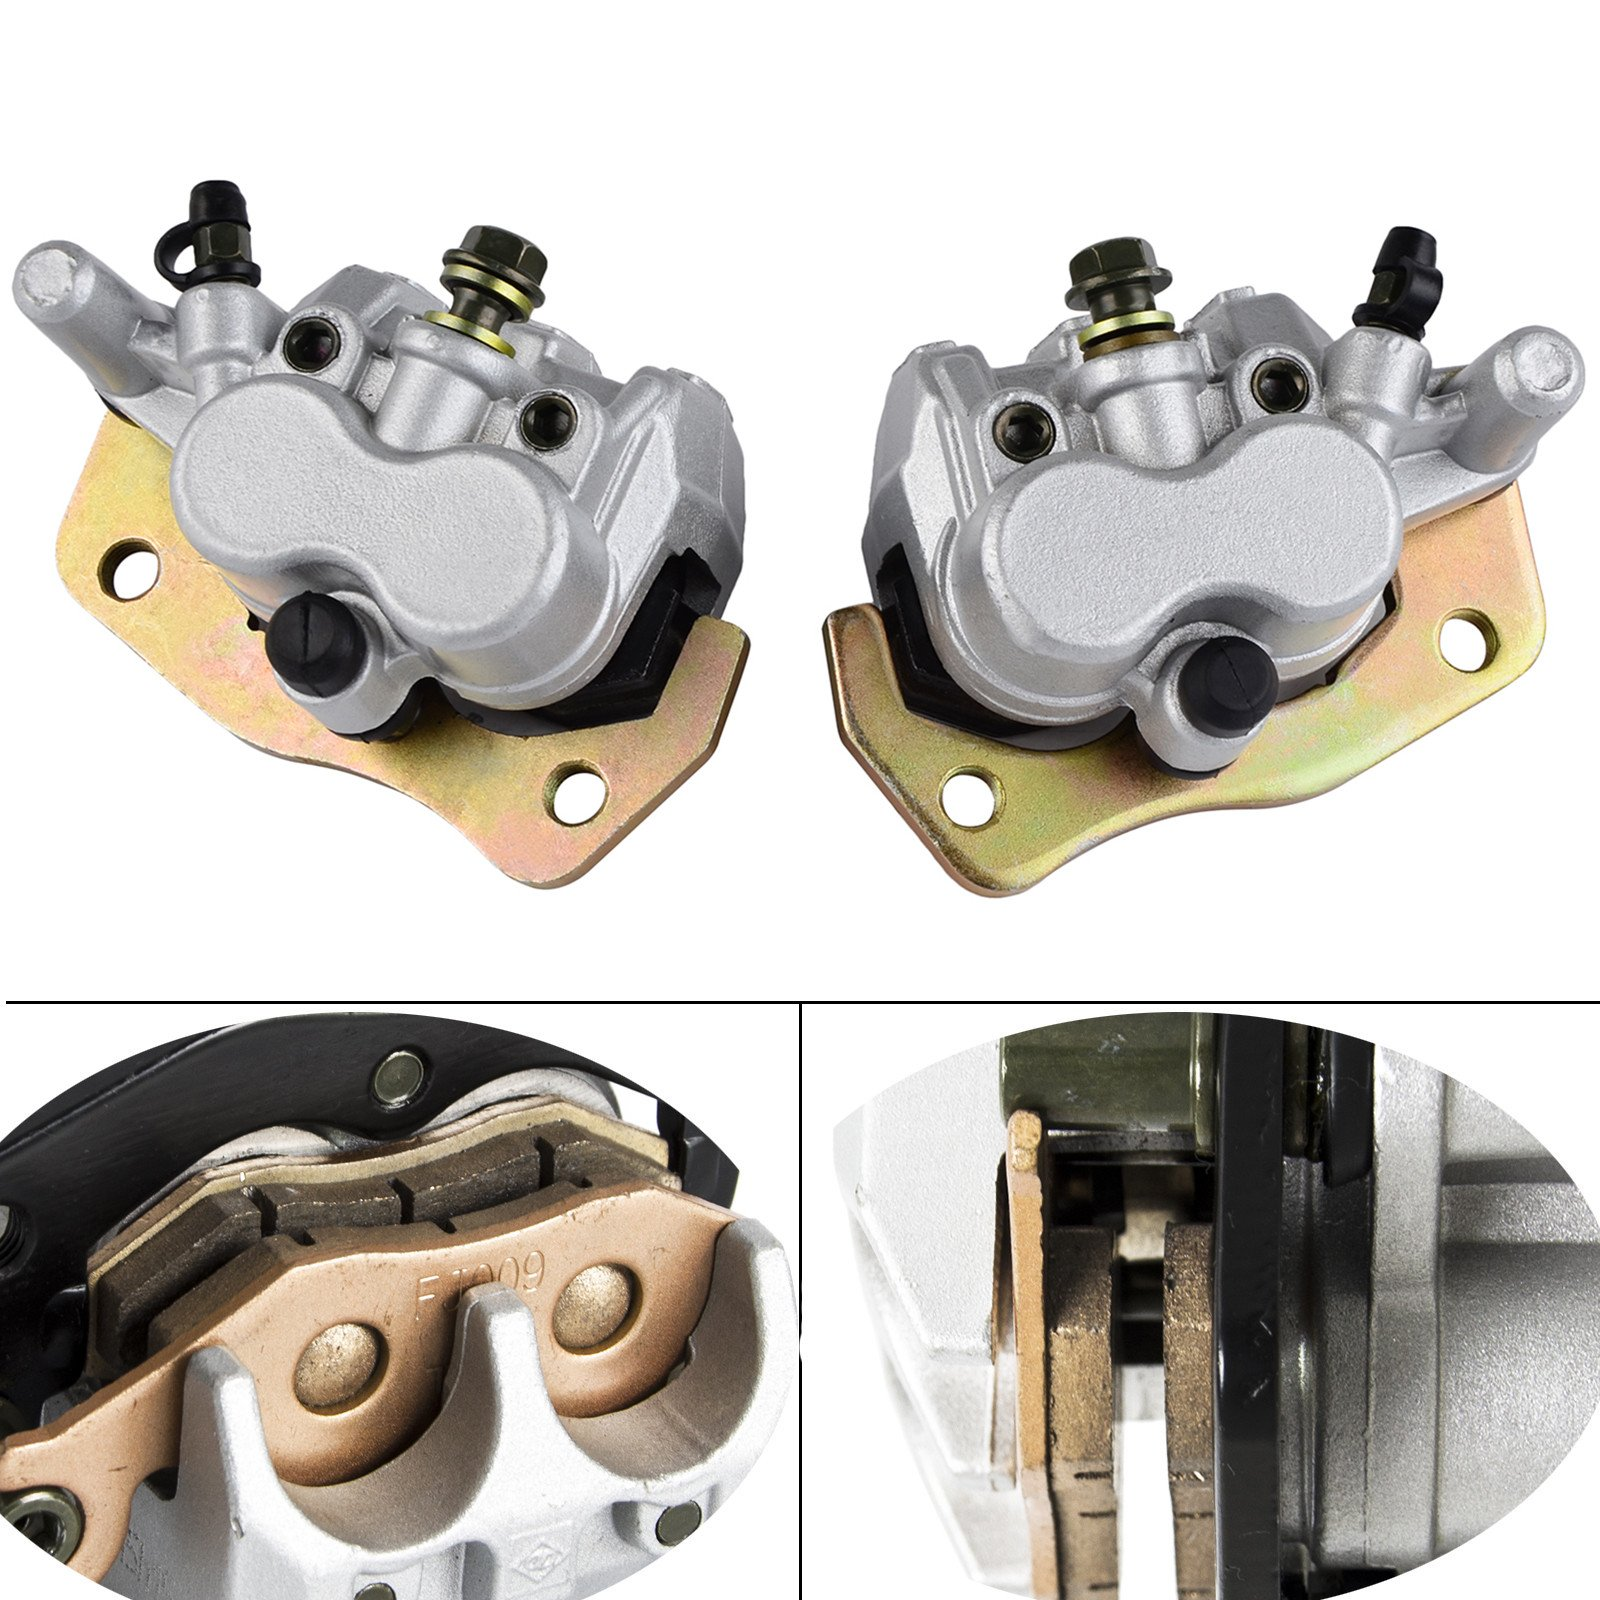 NICECNC Front Right & Left Brake Caliper With Pads for YAMAHA UTV RHINO 660 YXR660 YXR450 2004-2009 RHINO 450 2006-2009 RHINO 700 2008-2013 SUZUKI BURGMAN AN400 2007-2011